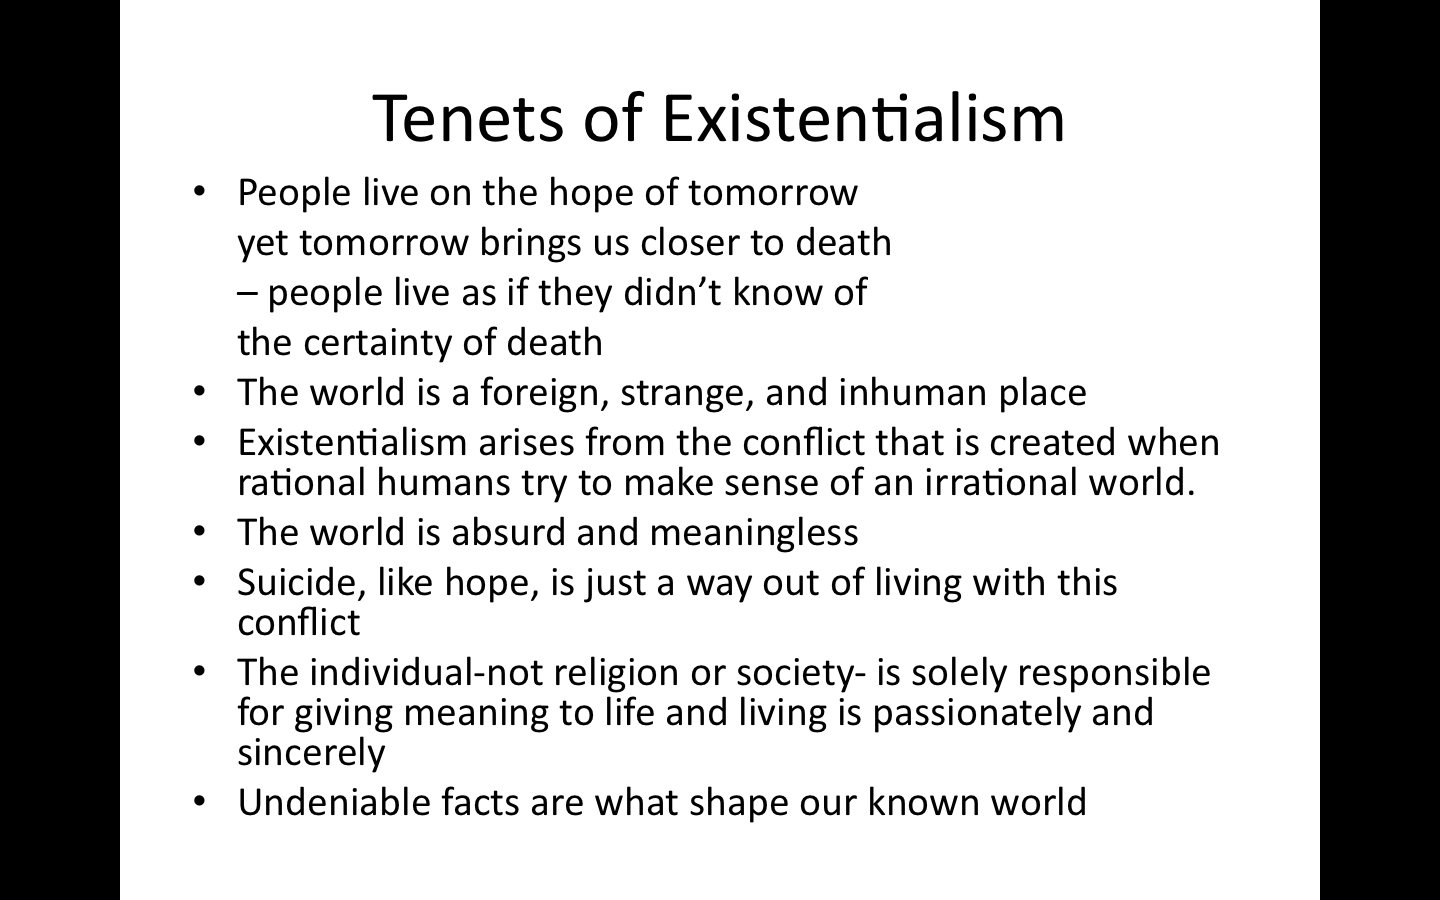 004 Essays In Existentialism Essay Example Tenets Of Outstanding Sartre Pdf Jean Paul Full